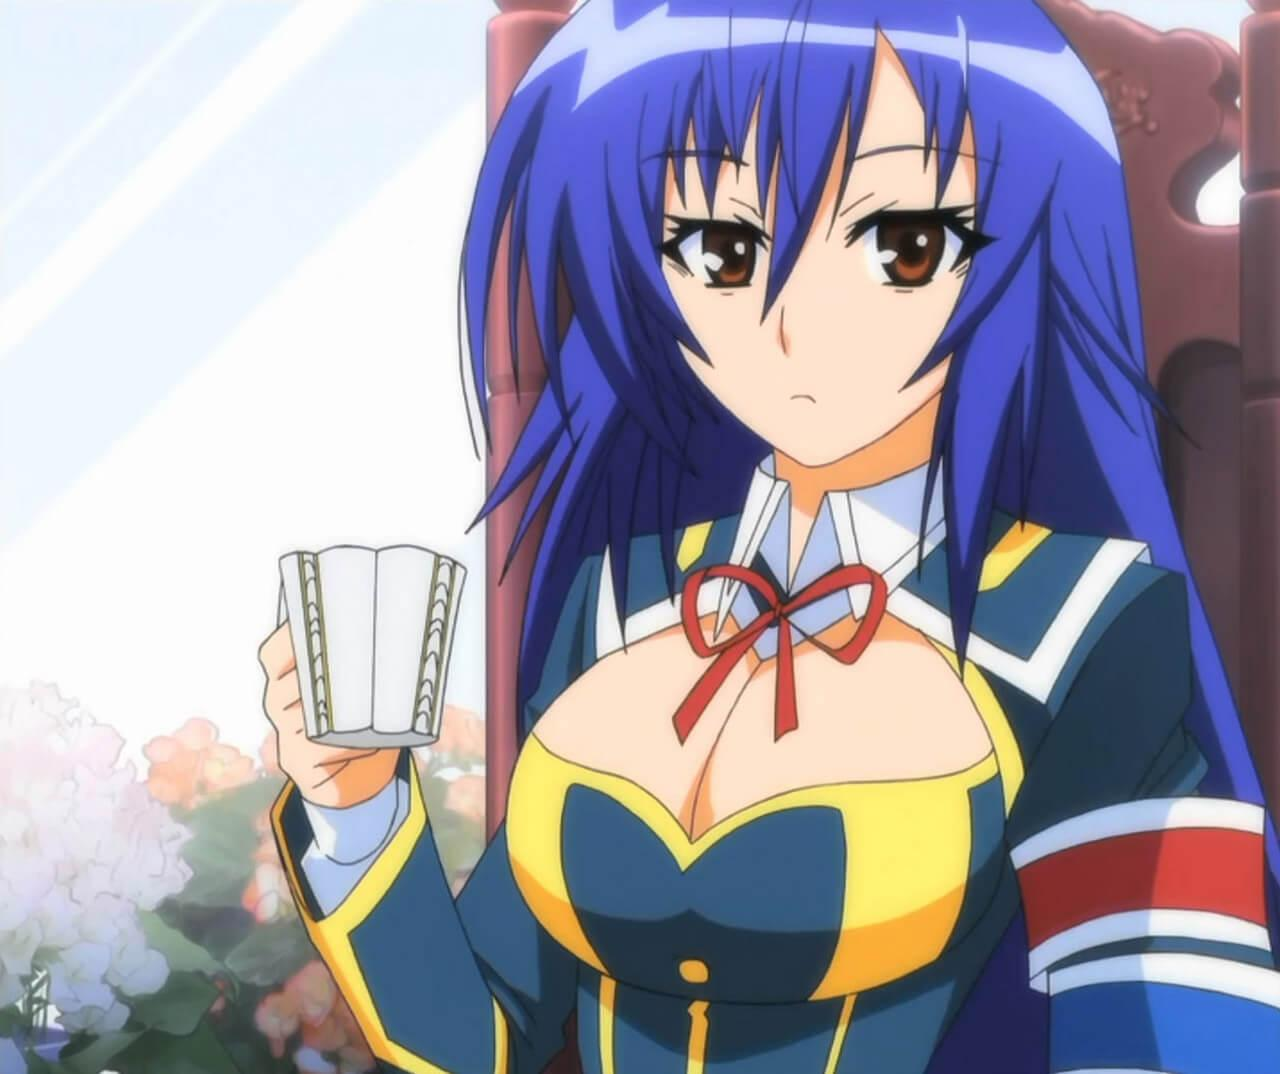 medaka kurokami hot boobs